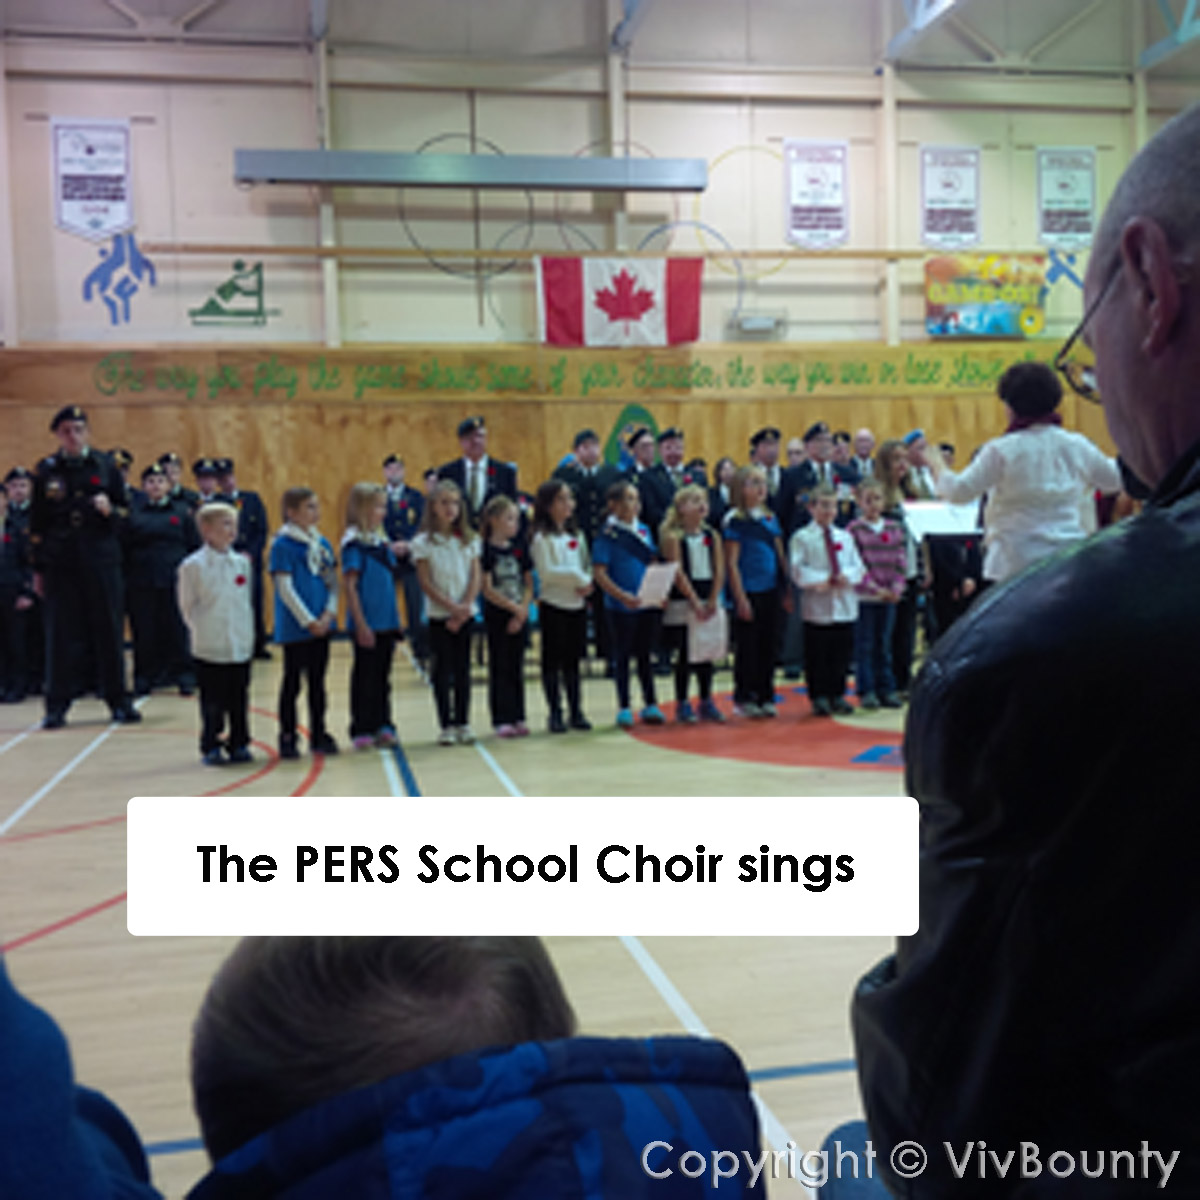 Port Elgin Regional School Choir, VivBounty